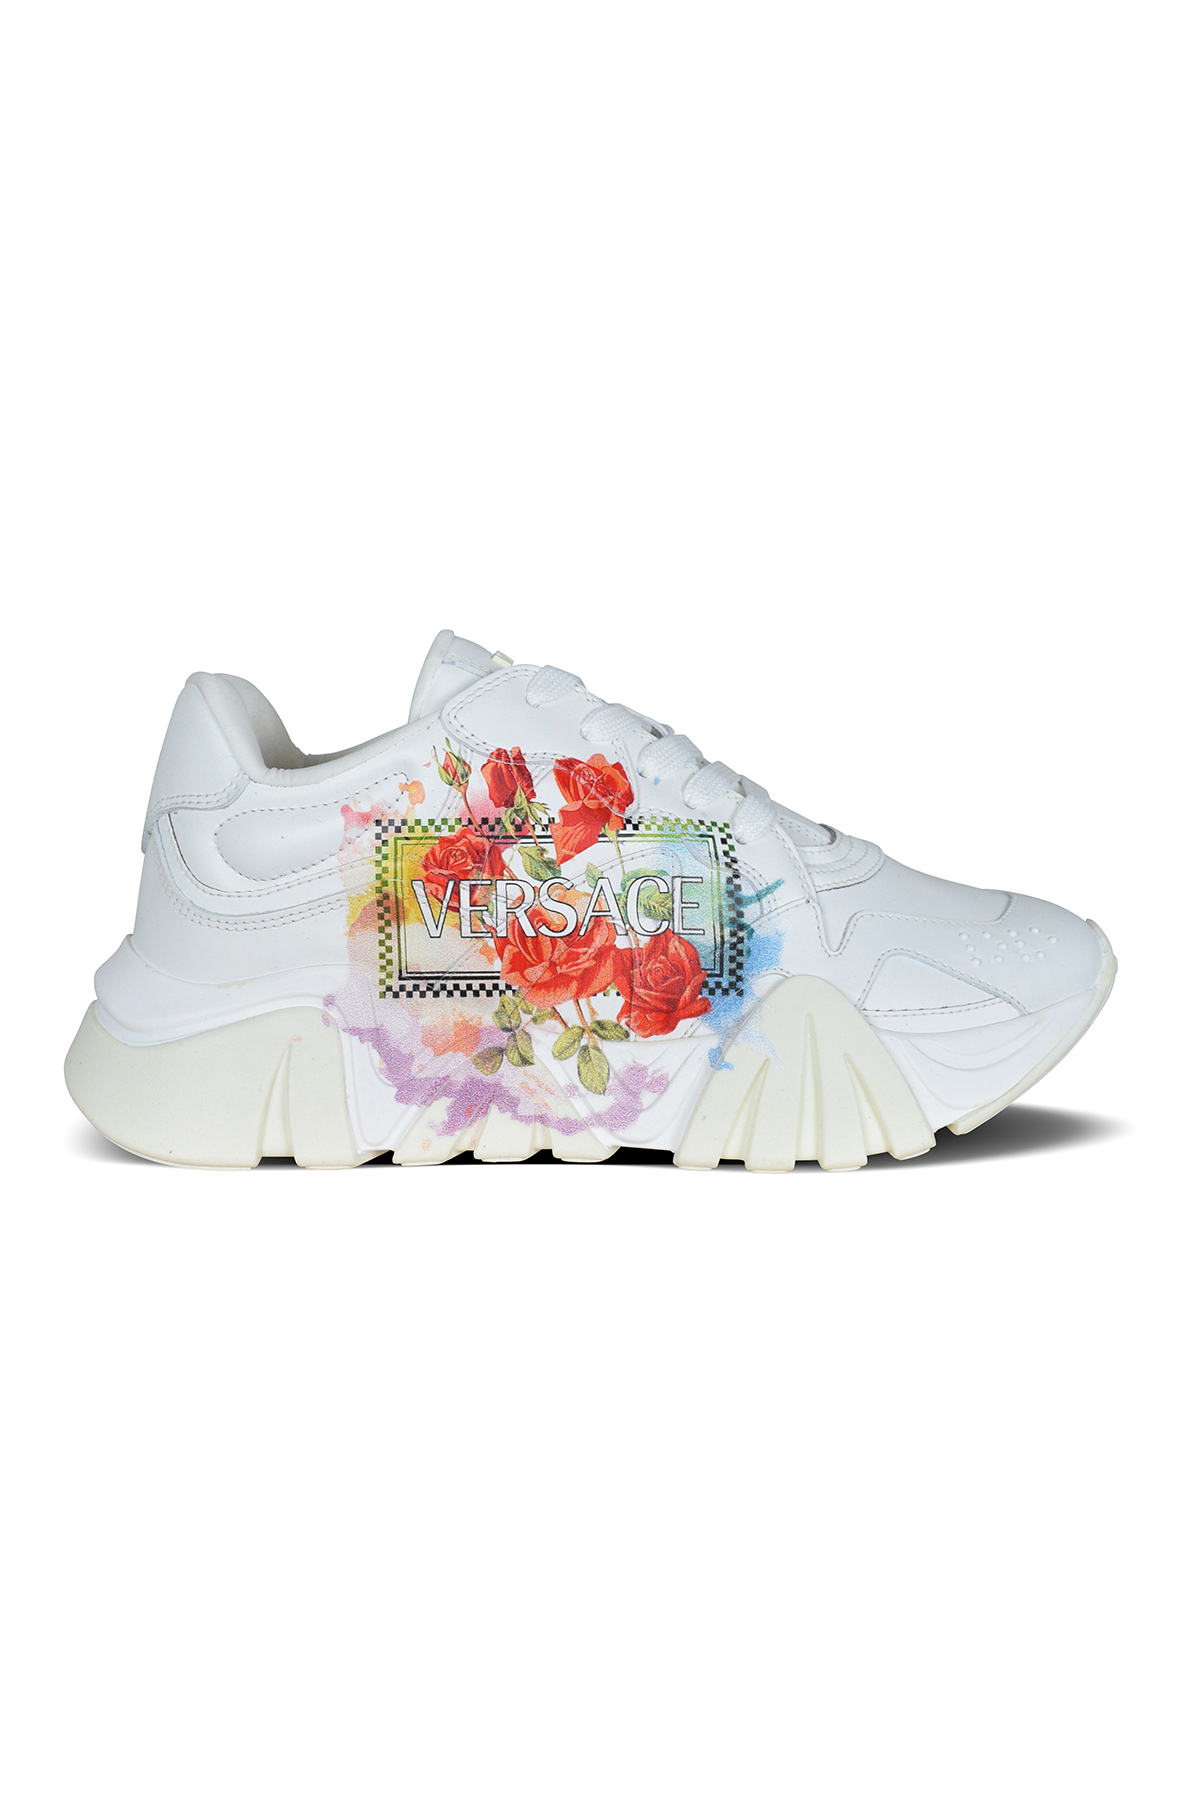 Versace Squalo sneakers in white leather.